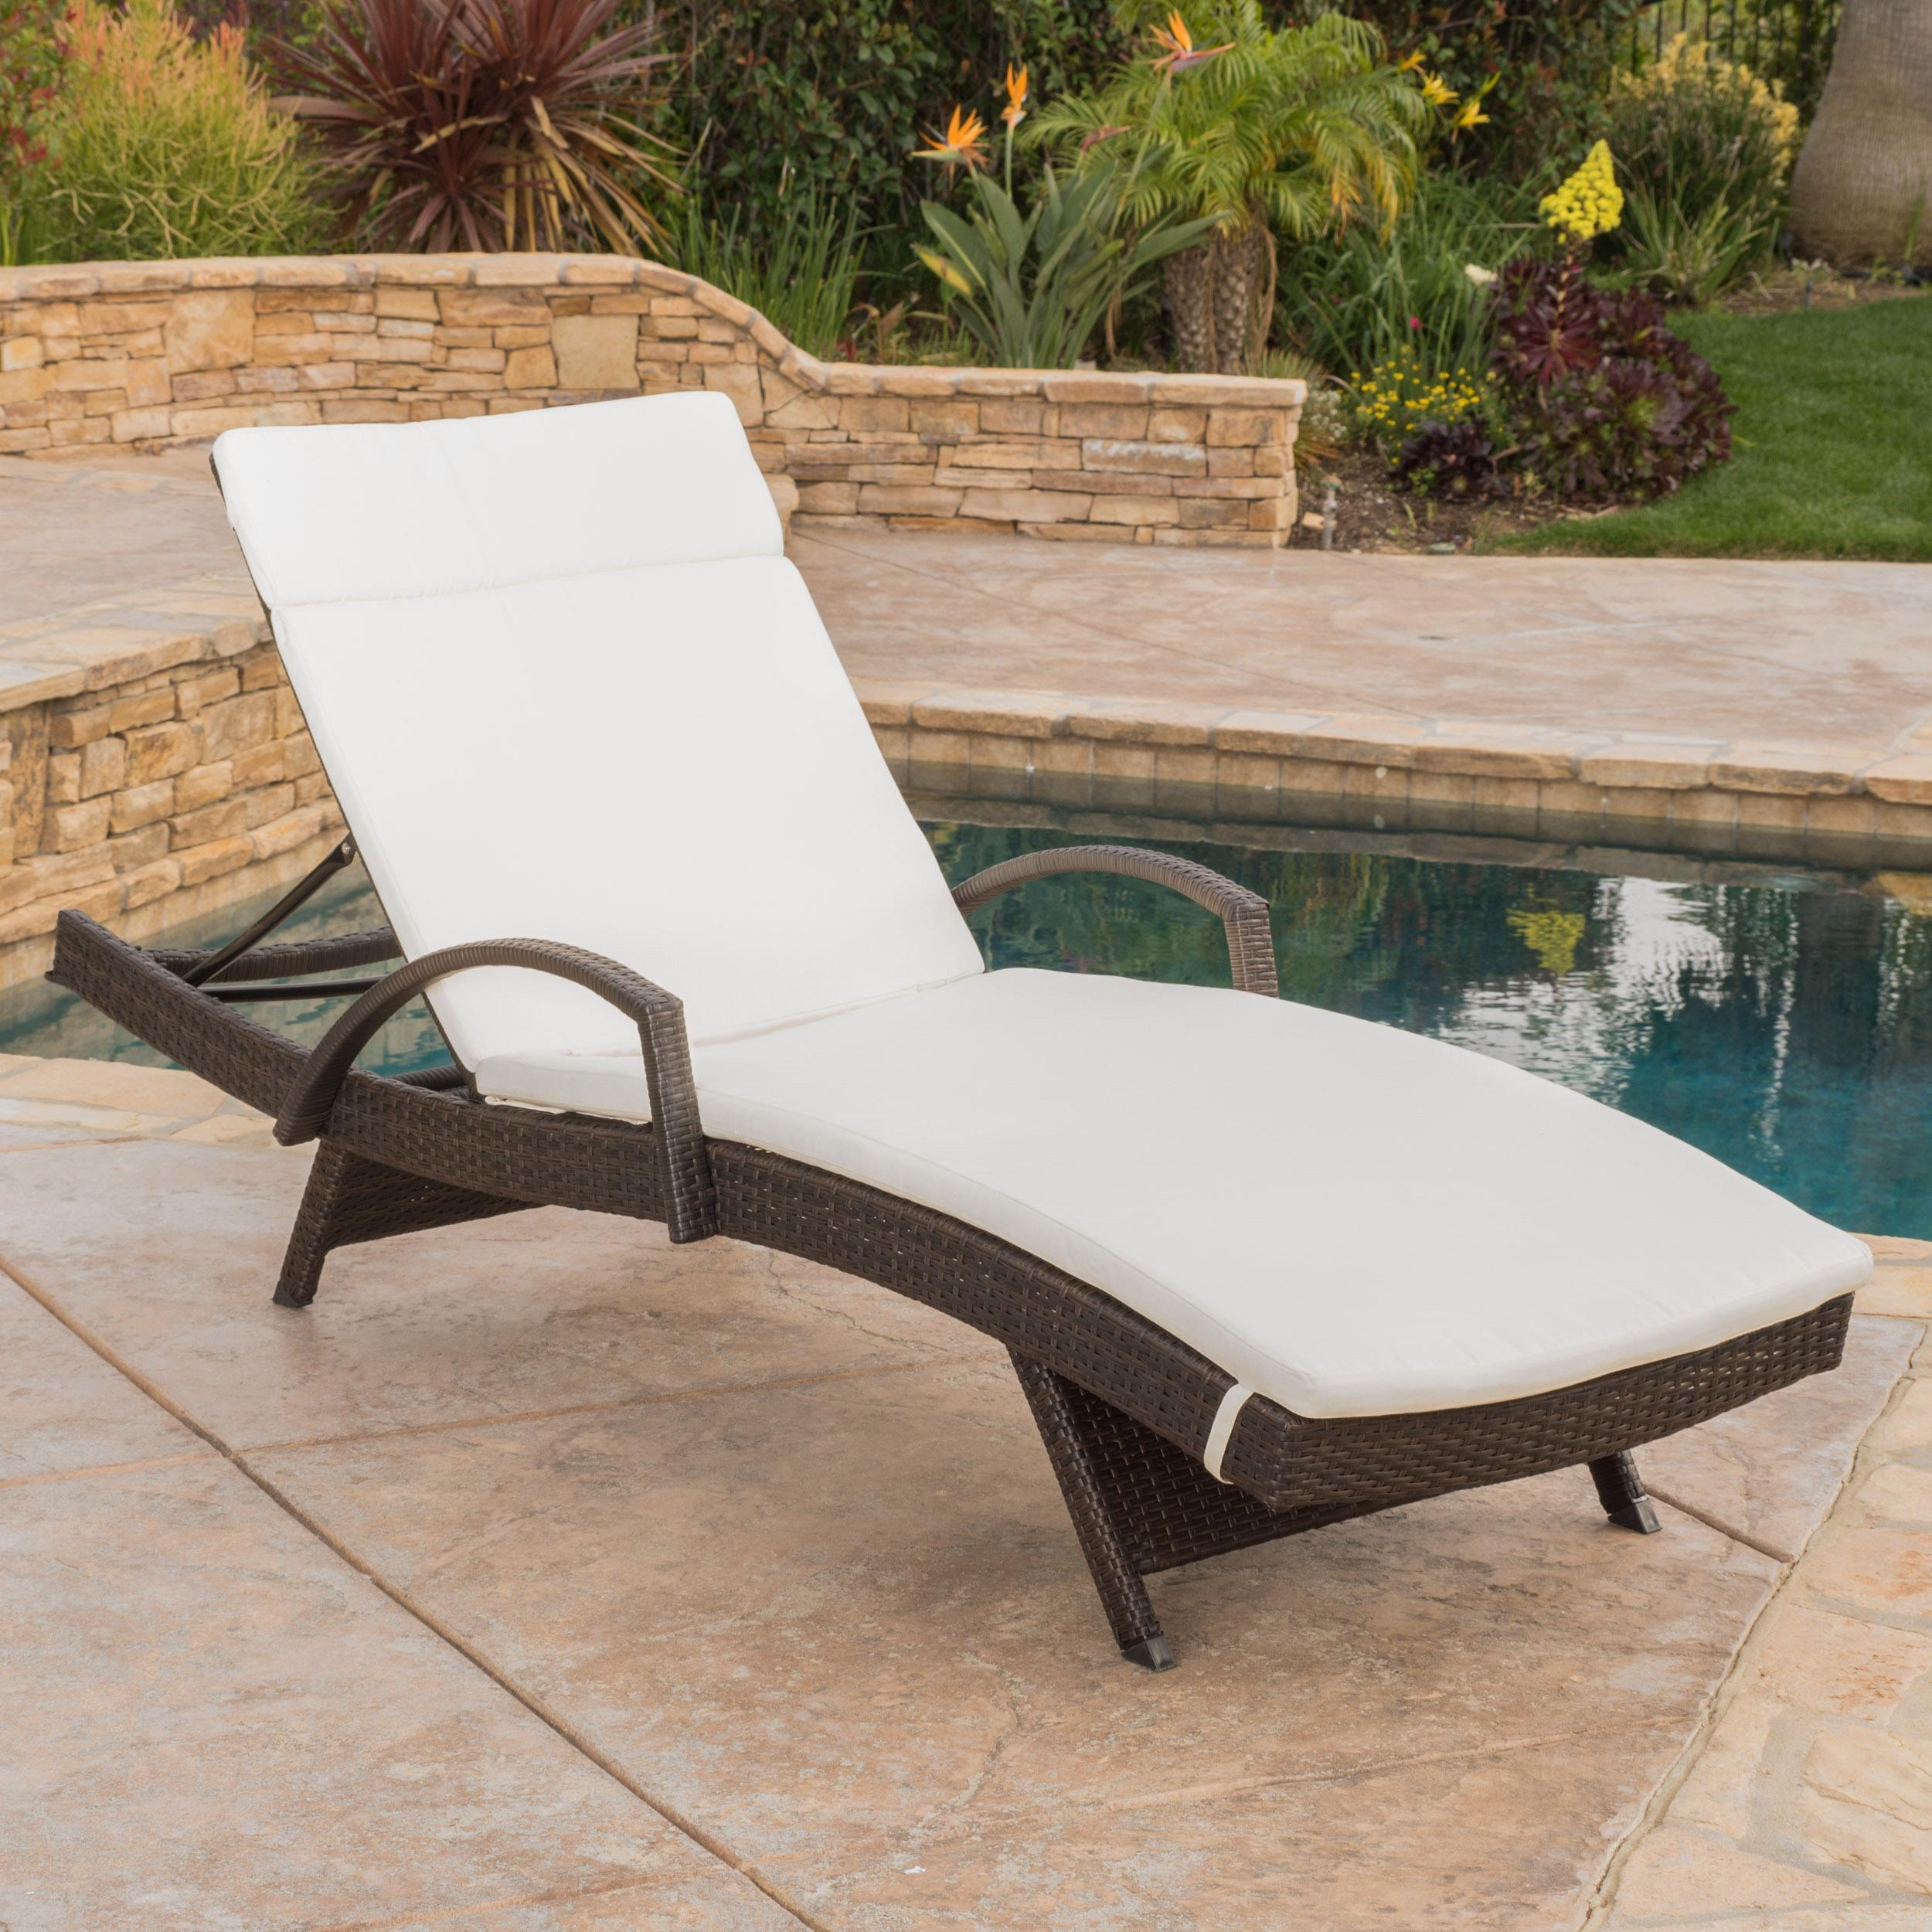 Brookside Outdoor Wicker Adjustable Chaise Lounge with Arms w/ IVORY Cushion